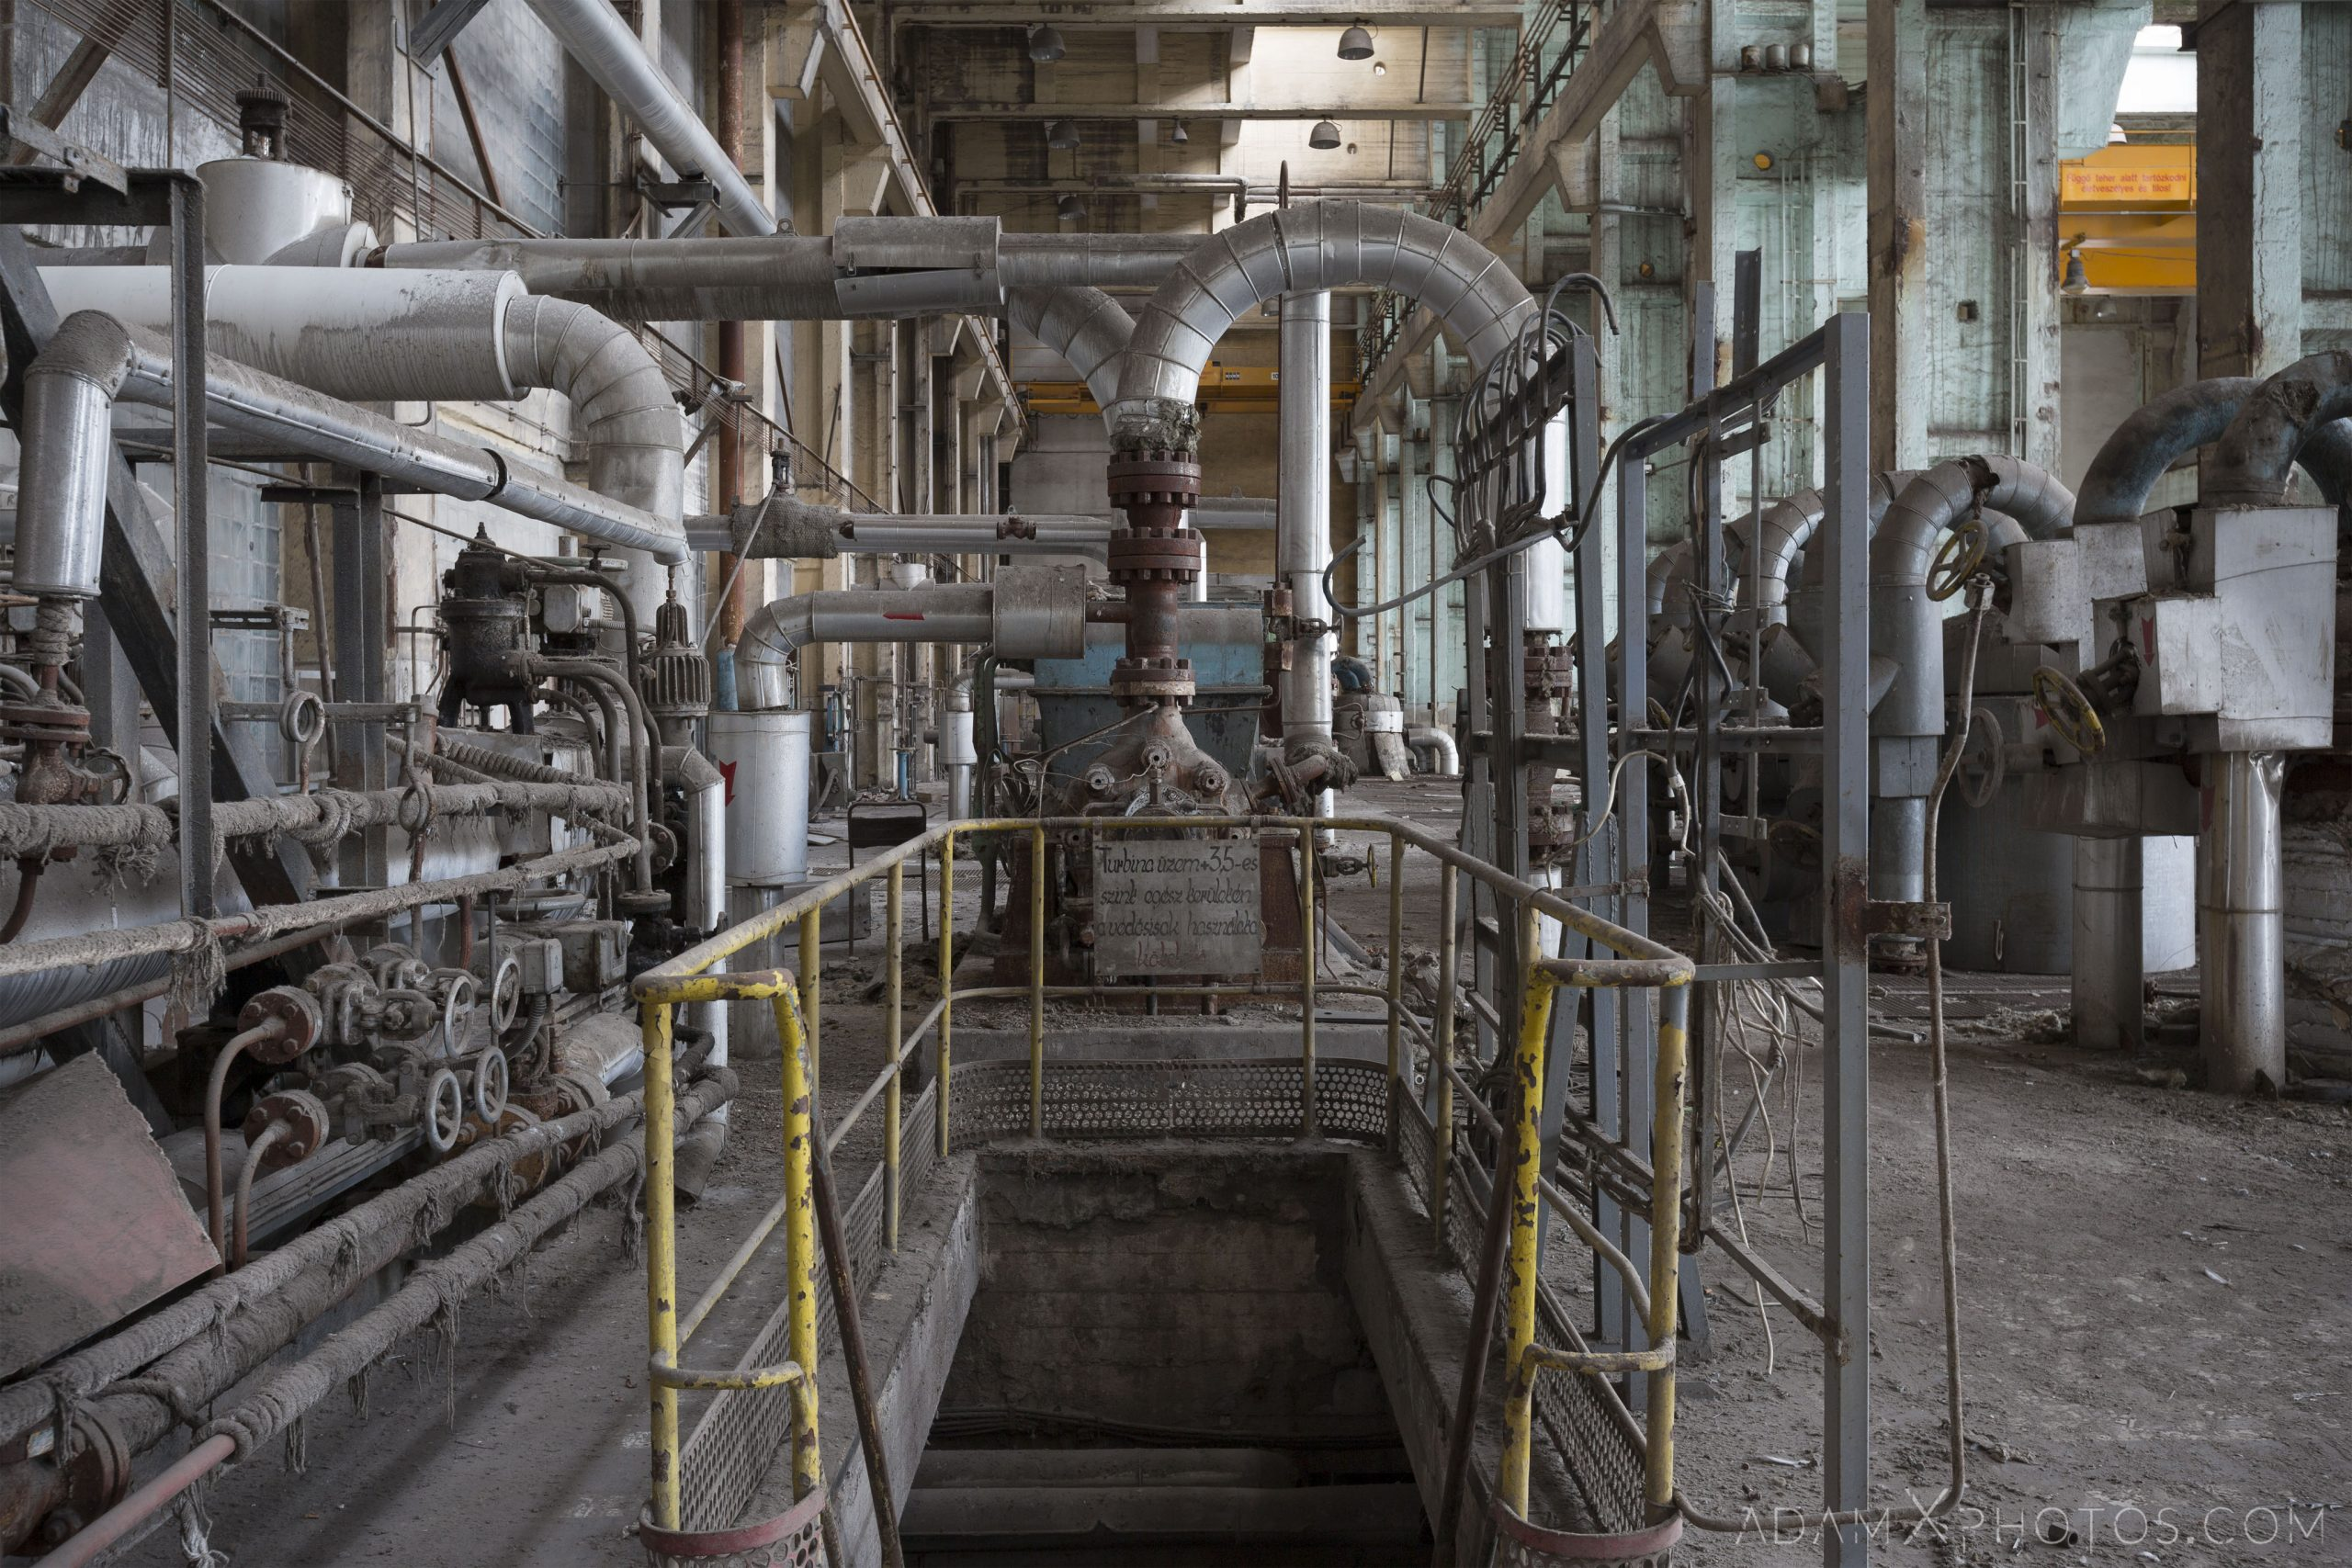 turbine hall pipes industry industrial rusty rusting Bladerunner Blade Runner 2049 Powerplant Inota Shephard's Power Plant Hungary Adam X Urbex Urban Exploration Access 2018 Abandoned decay ruins lost forgotten derelict location creepy haunting eerie security